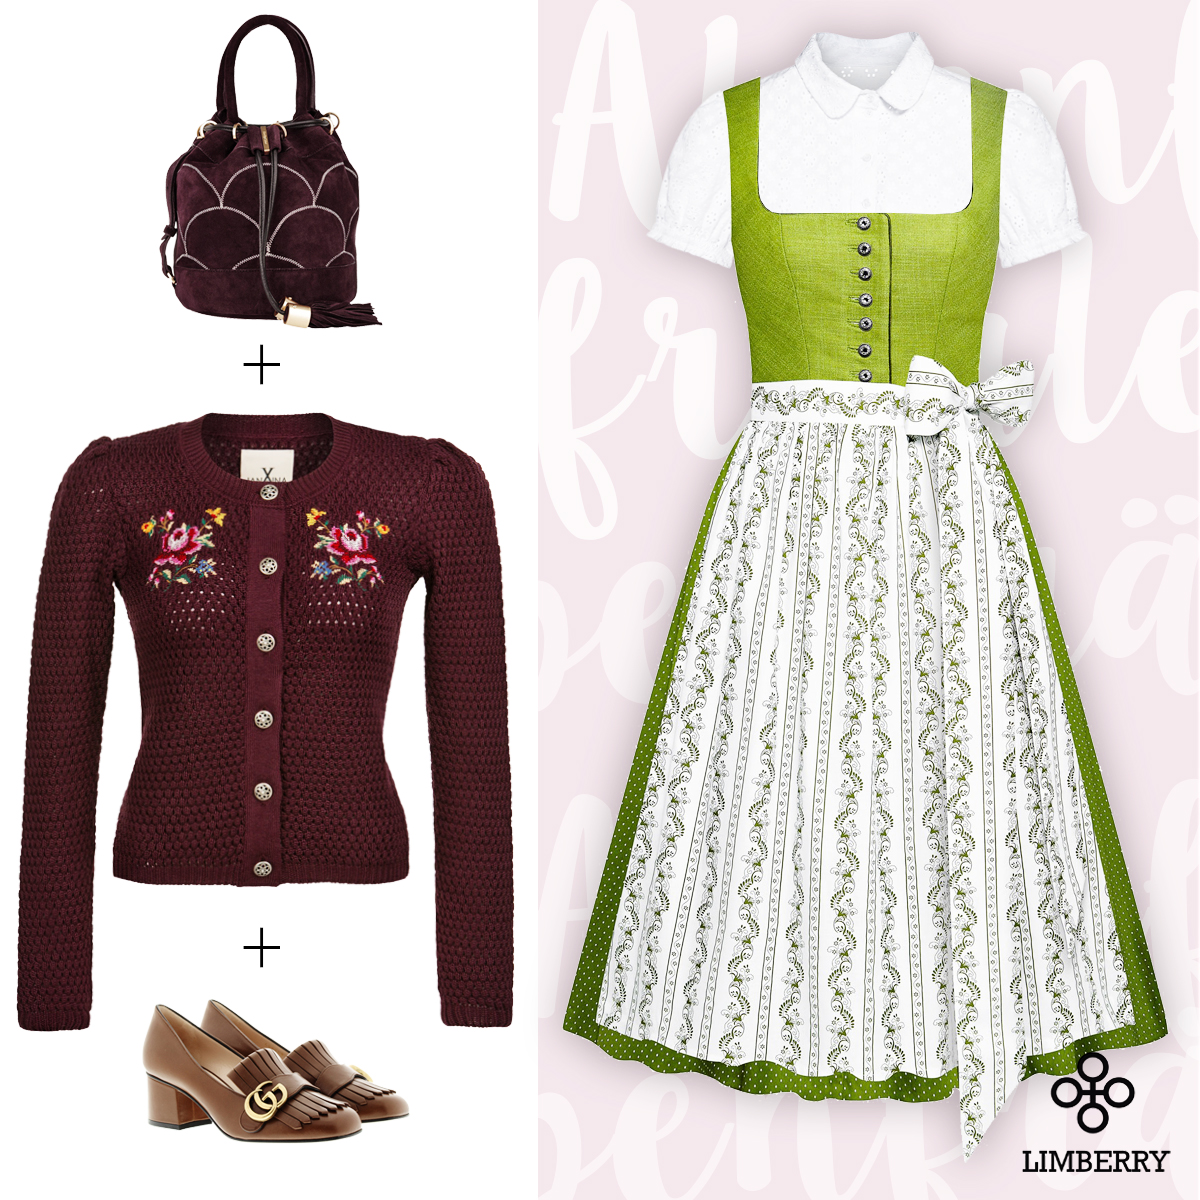 1-dirndl-4-looks-preppy-dirndl-bucket-bag-college-pumps-limberry-blumen-stickerei